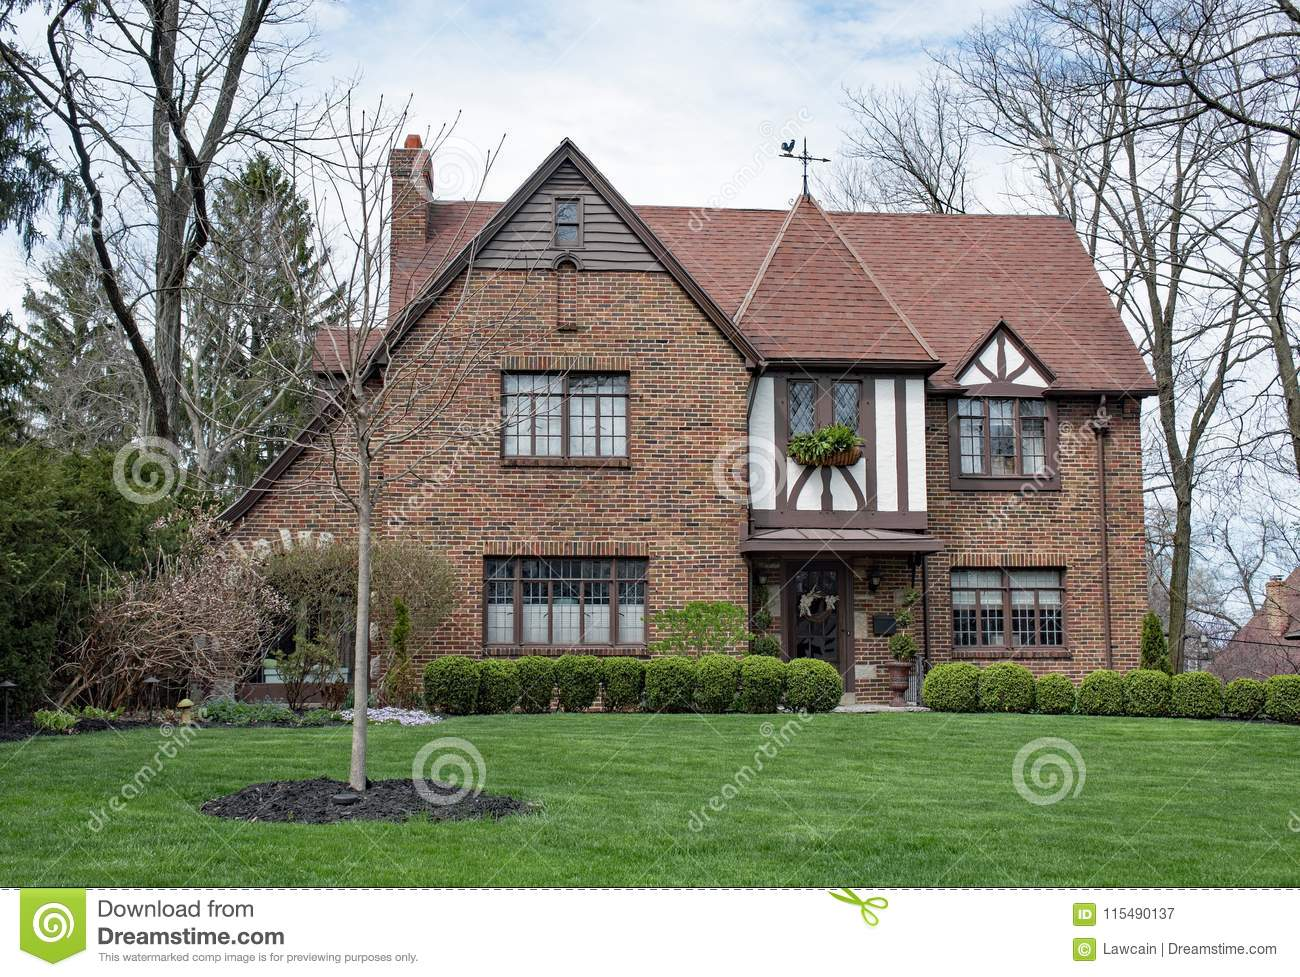 Download Springtime English Tudor Home Stock Image - Image of bushes brown: 115490137 & Springtime English Tudor Home Stock Image - Image of bushes brown ...